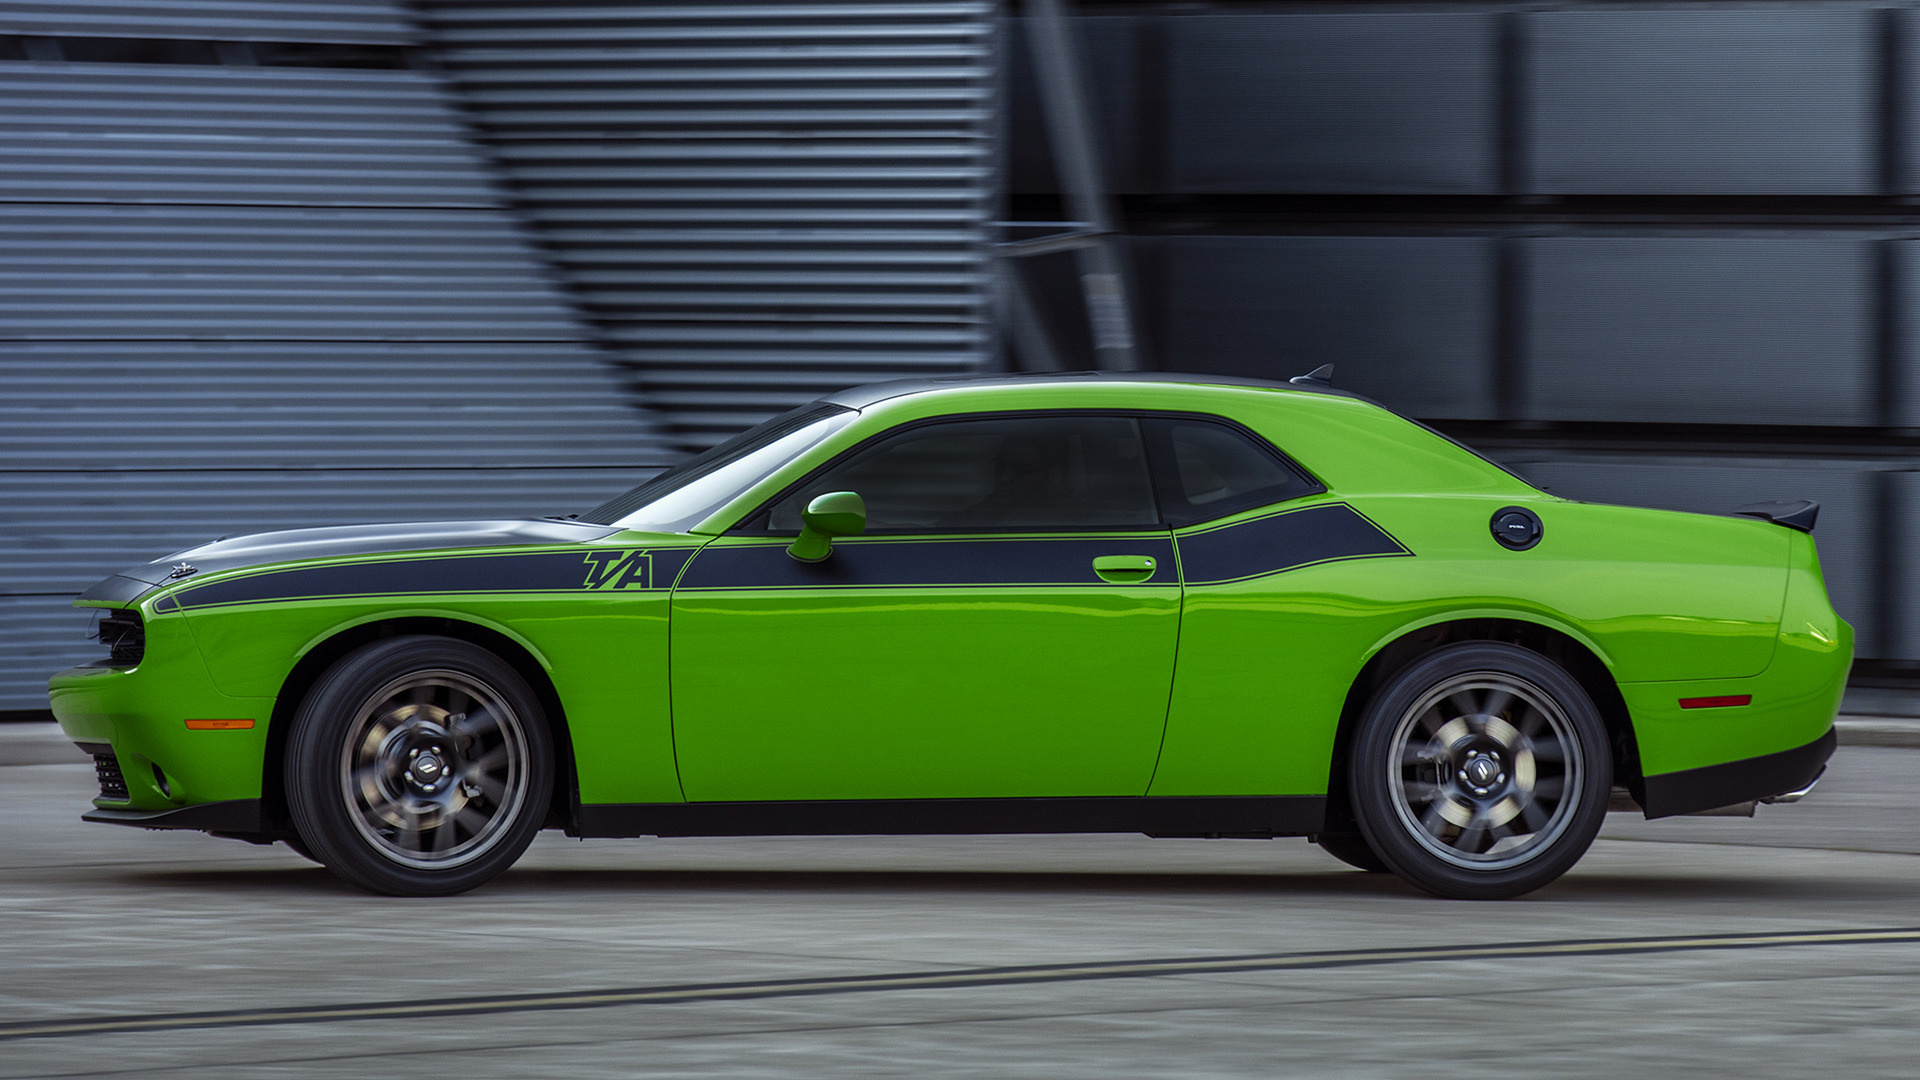 Dodge Challenger T/A (2017) Wallpapers and HD Images - Car ...